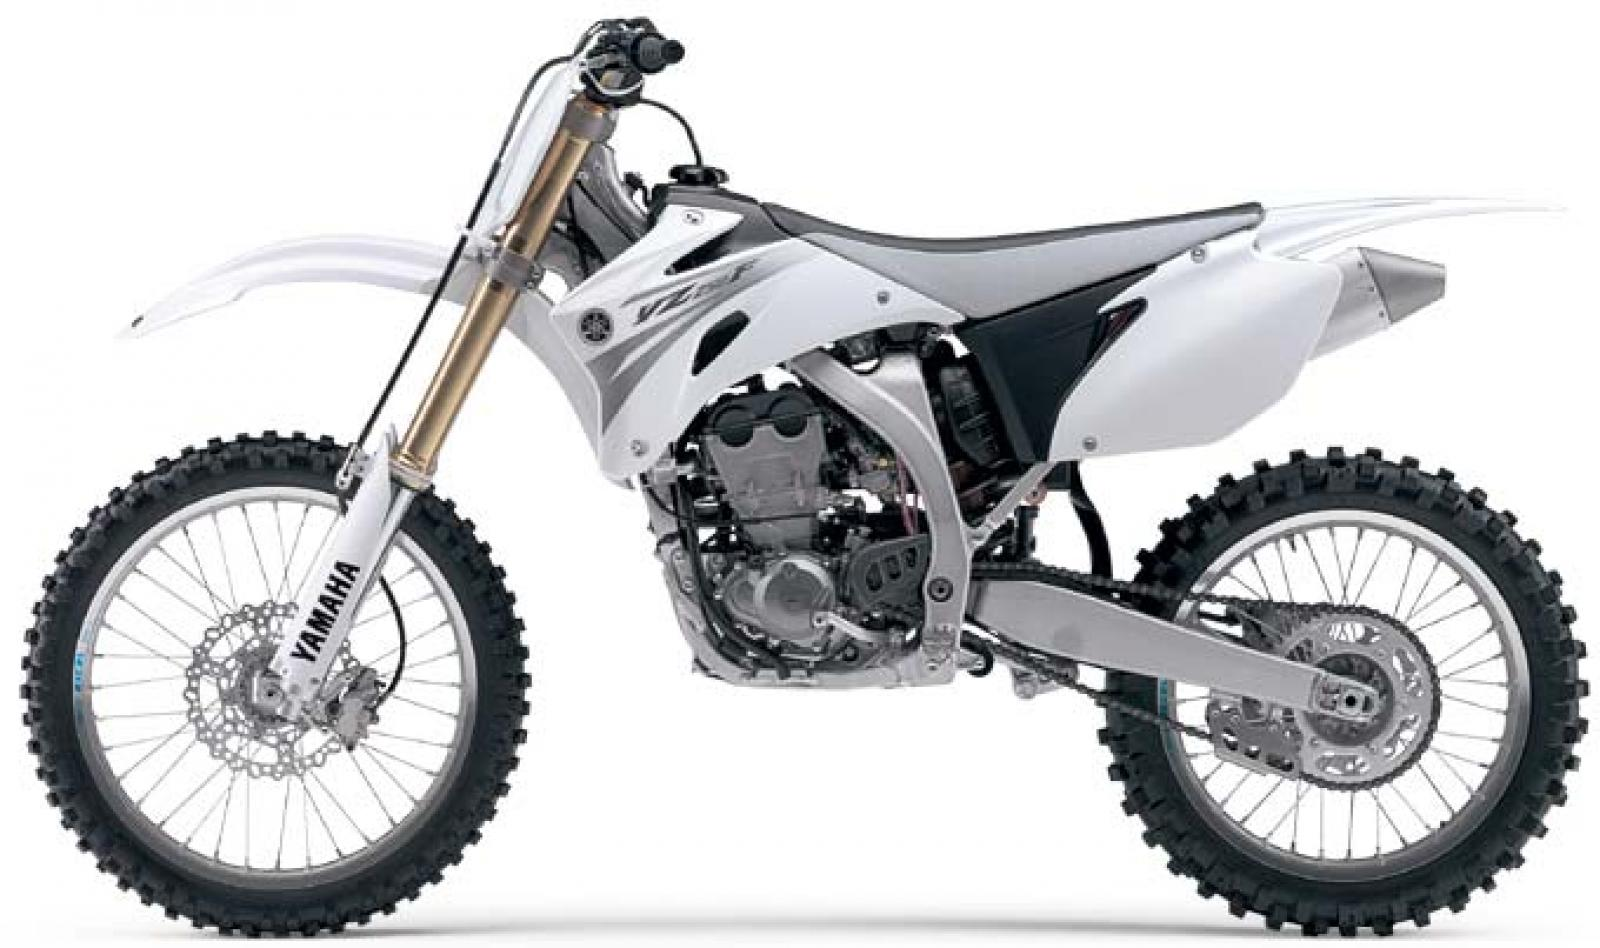 2007 yamaha yz 250 f moto zombdrive com. Black Bedroom Furniture Sets. Home Design Ideas